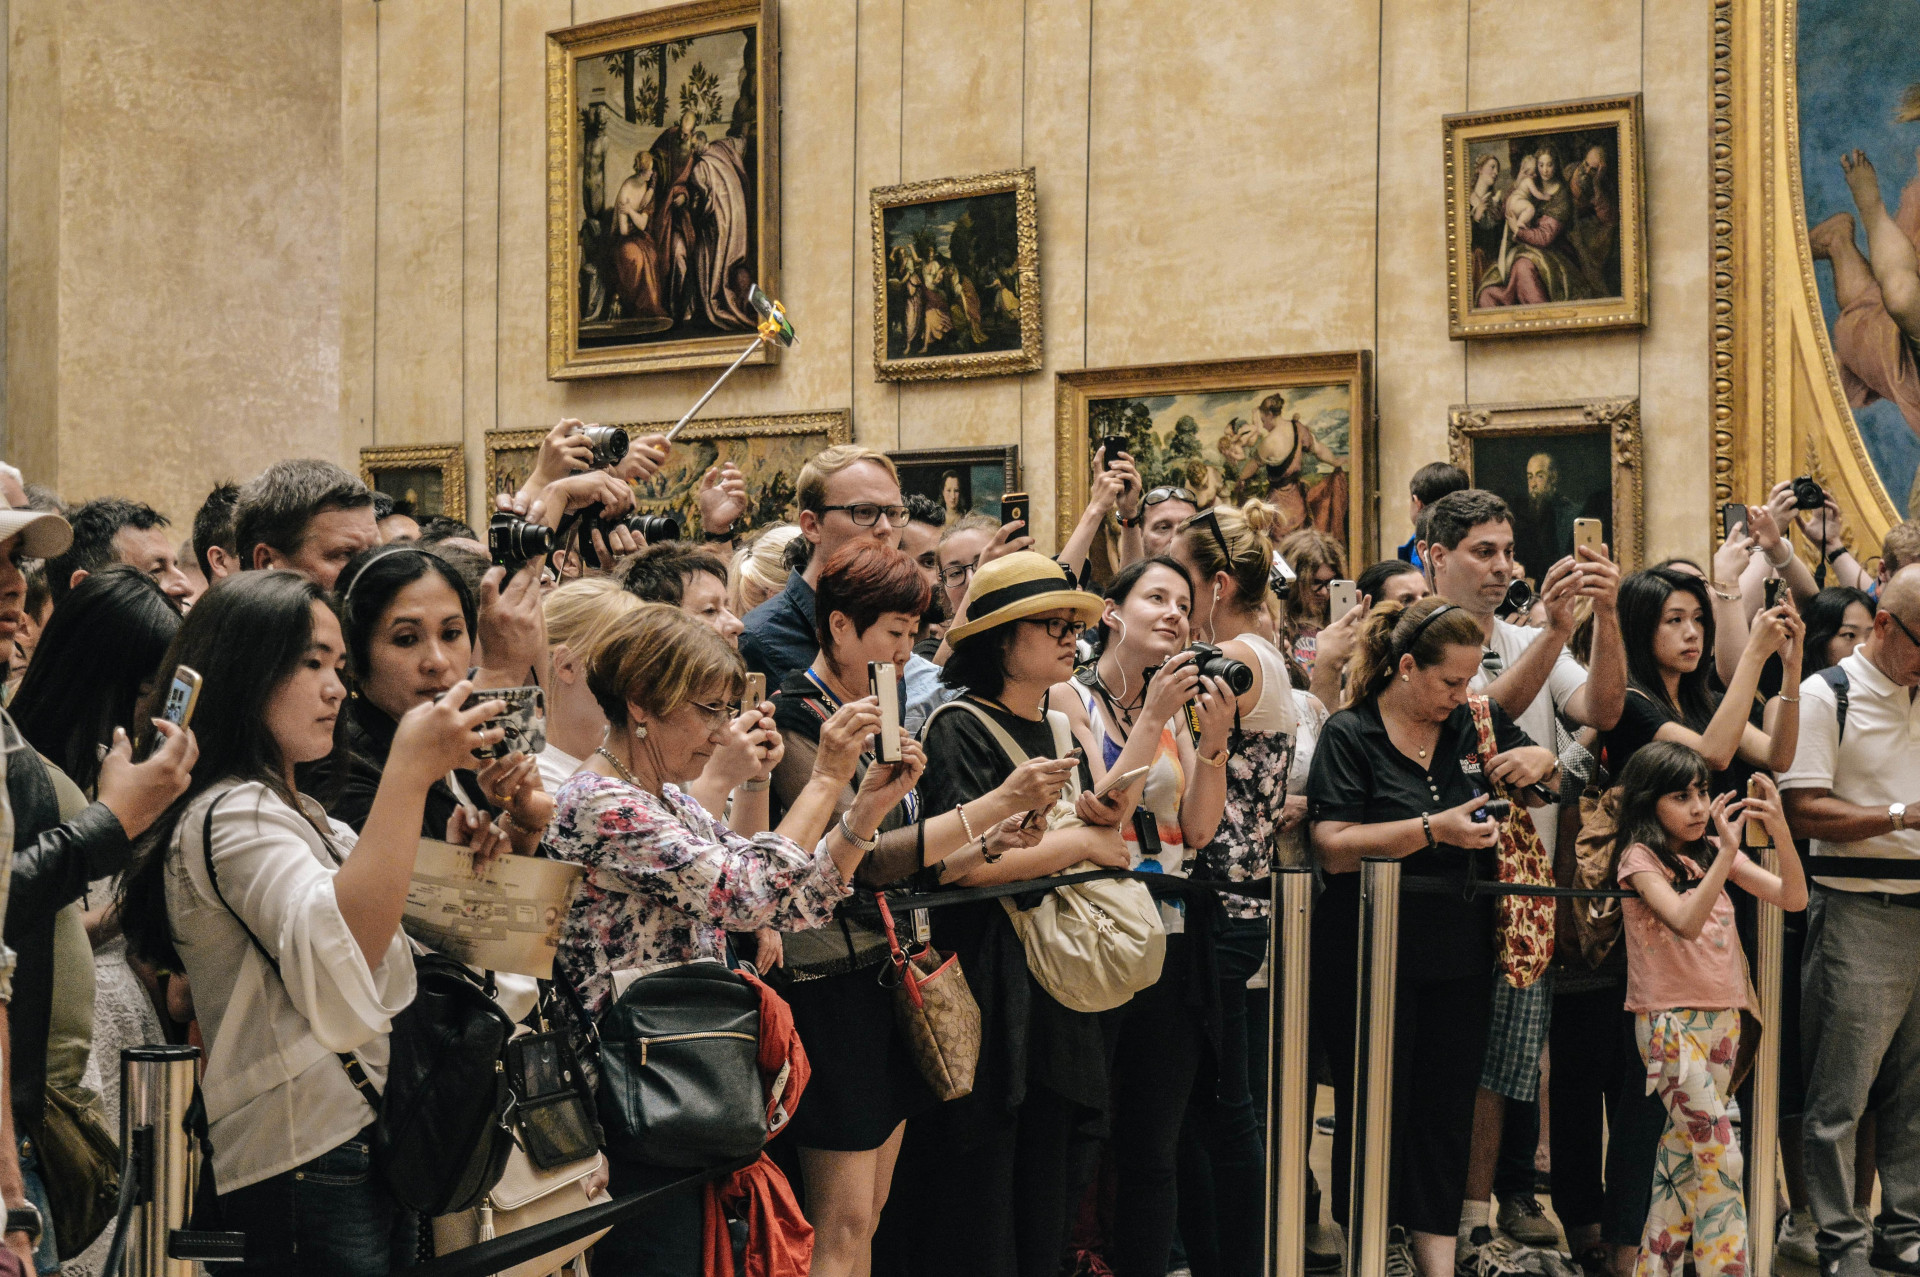 A large group of people taking pictures at a museum